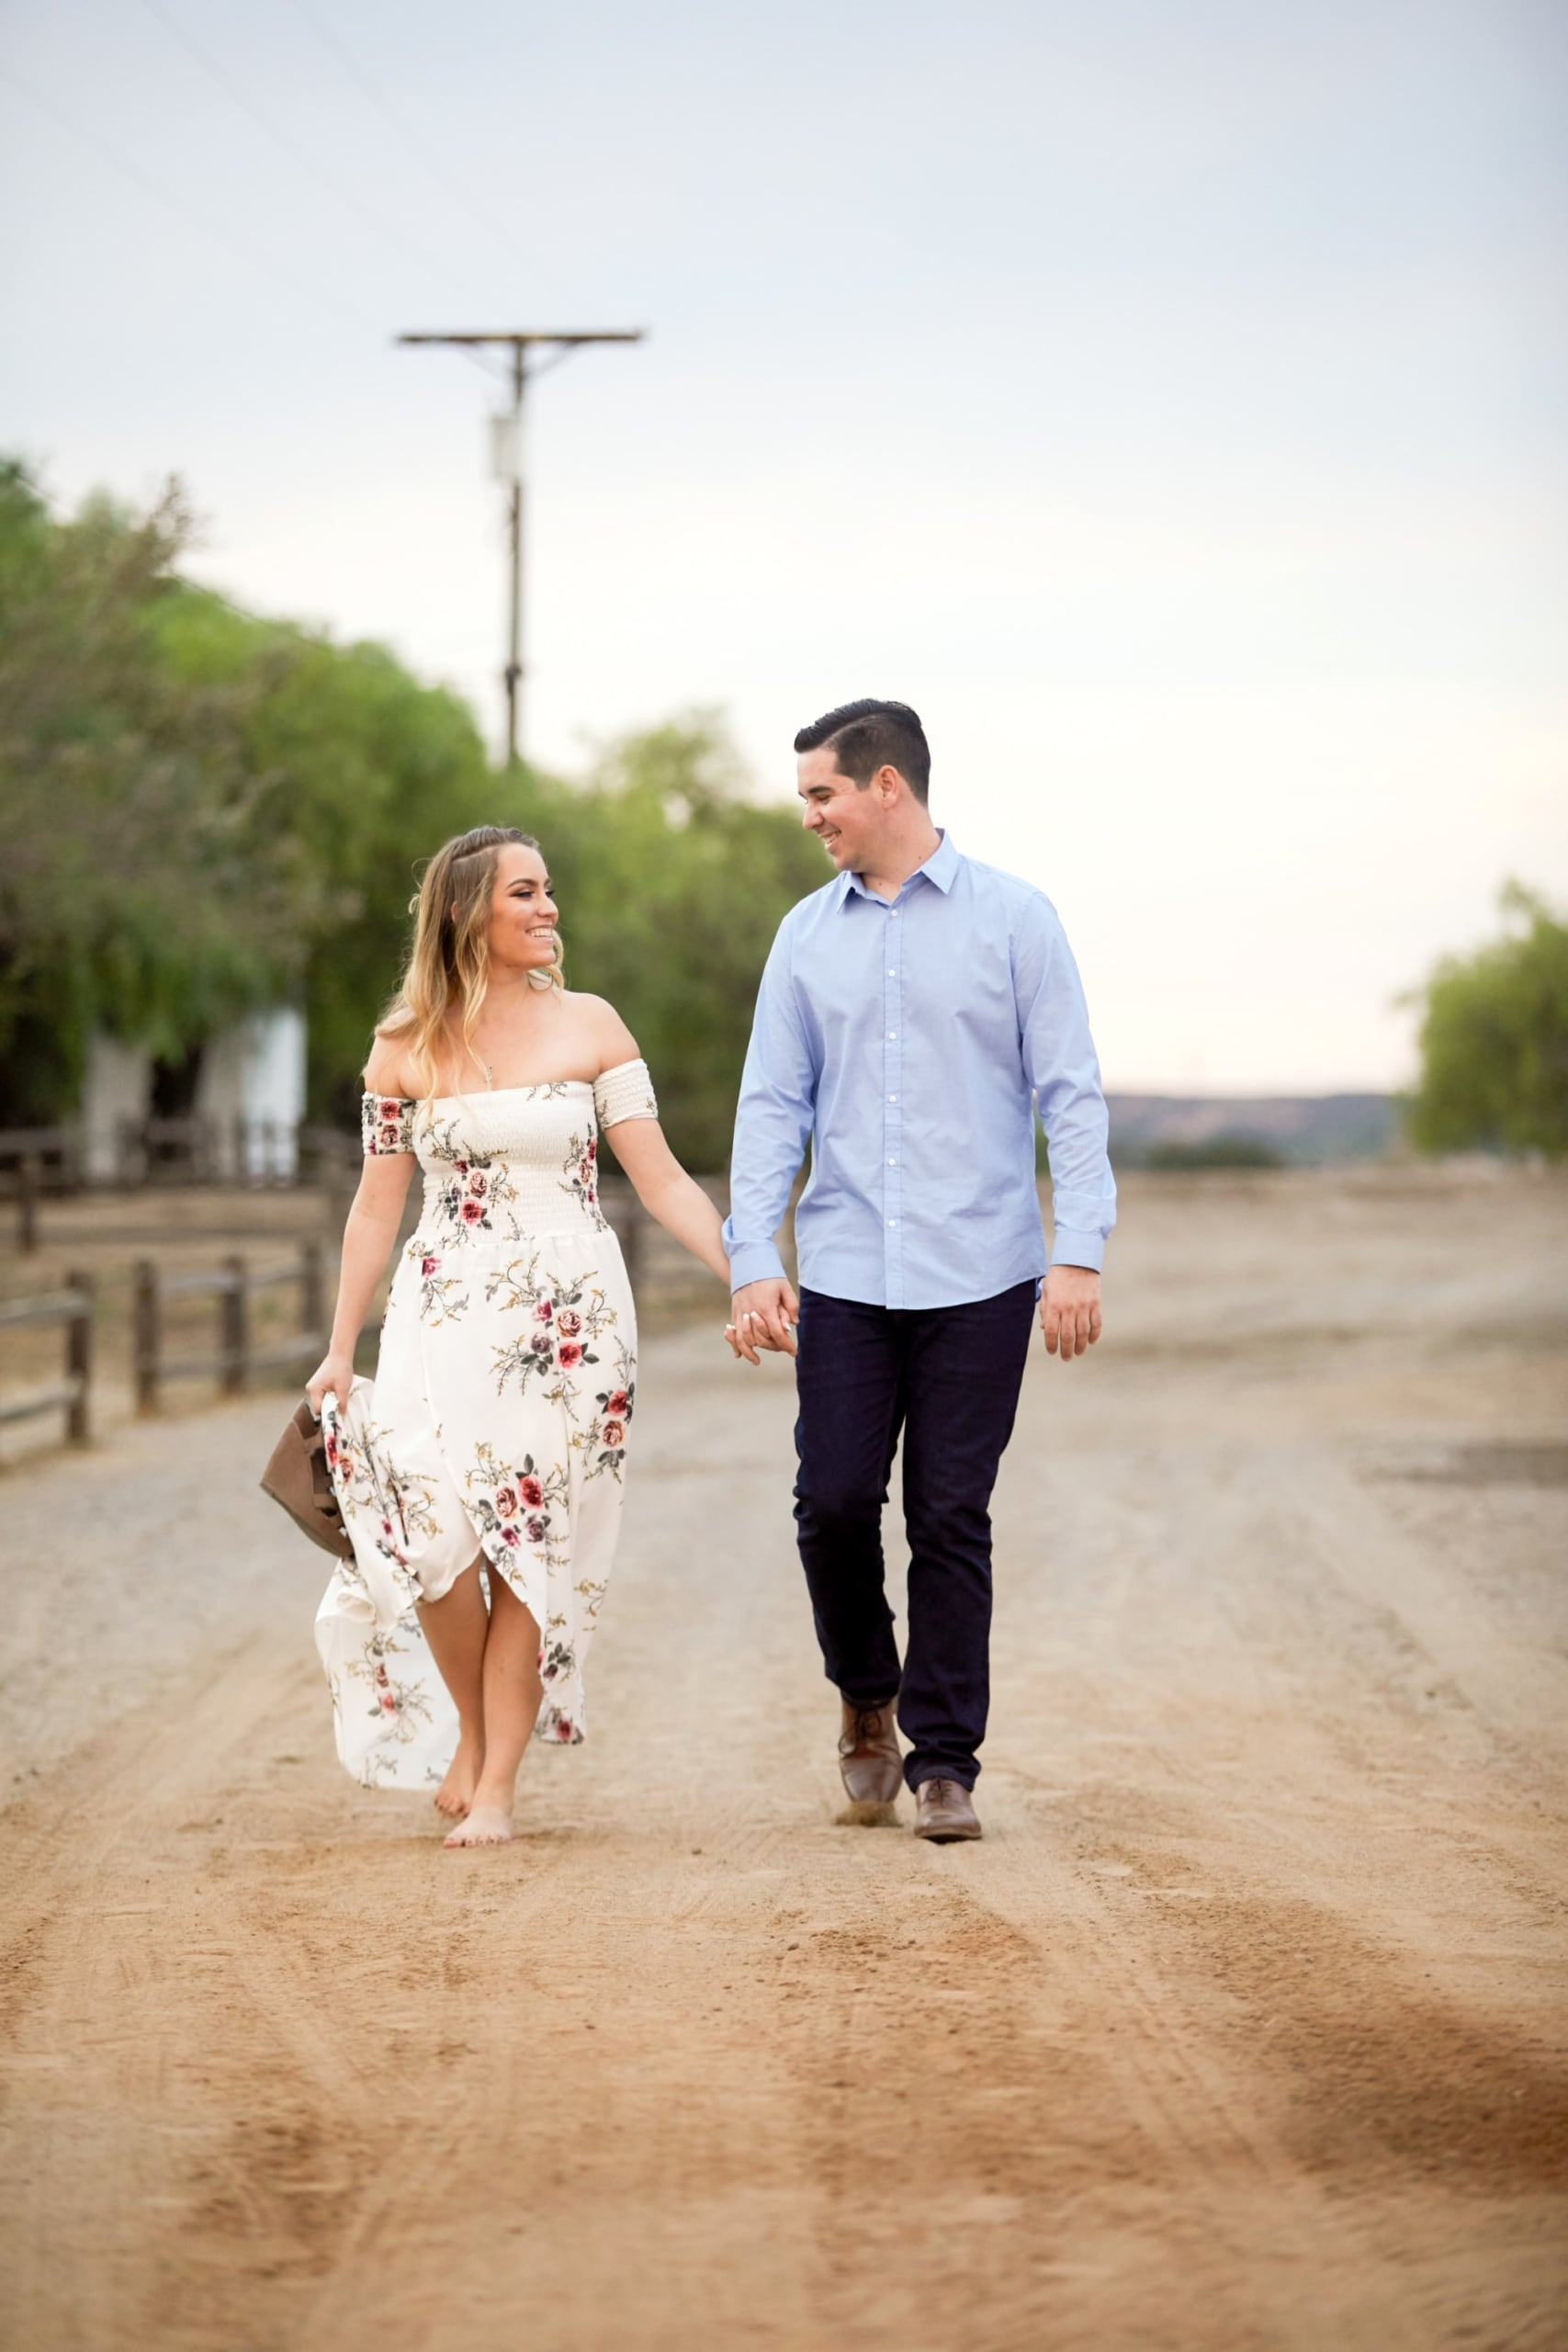 a man and a woman walking down a dirt road